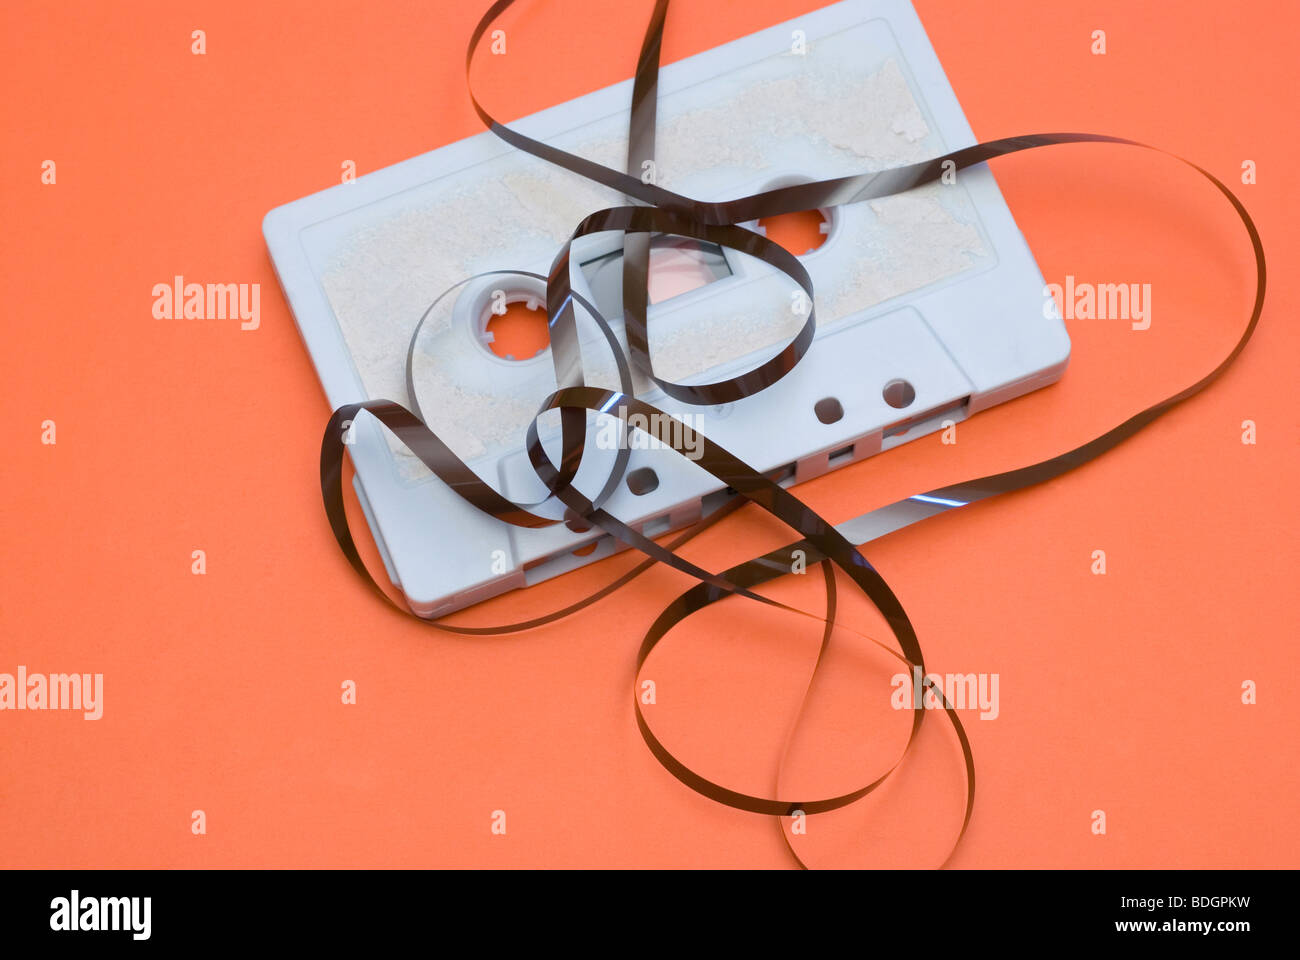 old audio cassette tape spilling out - Stock Image